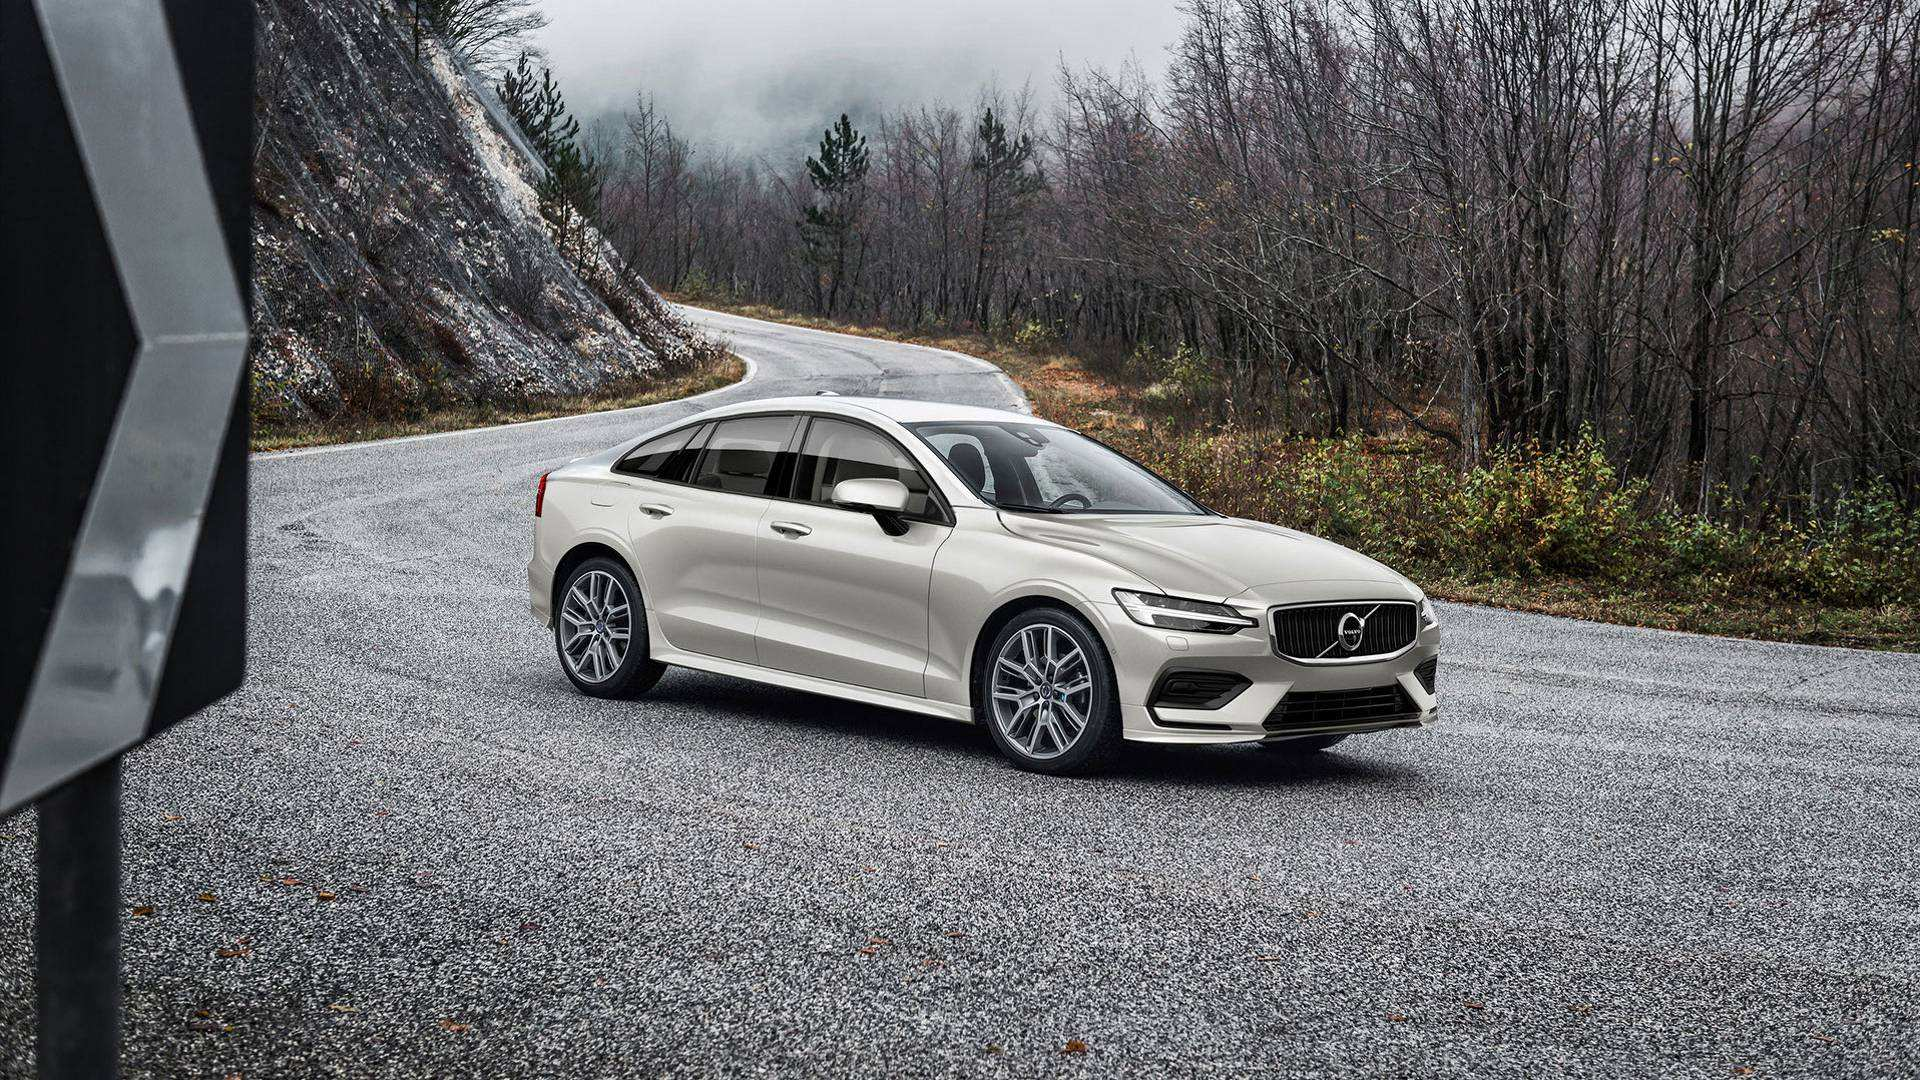 97 Great 2019 Volvo Models Style for 2019 Volvo Models